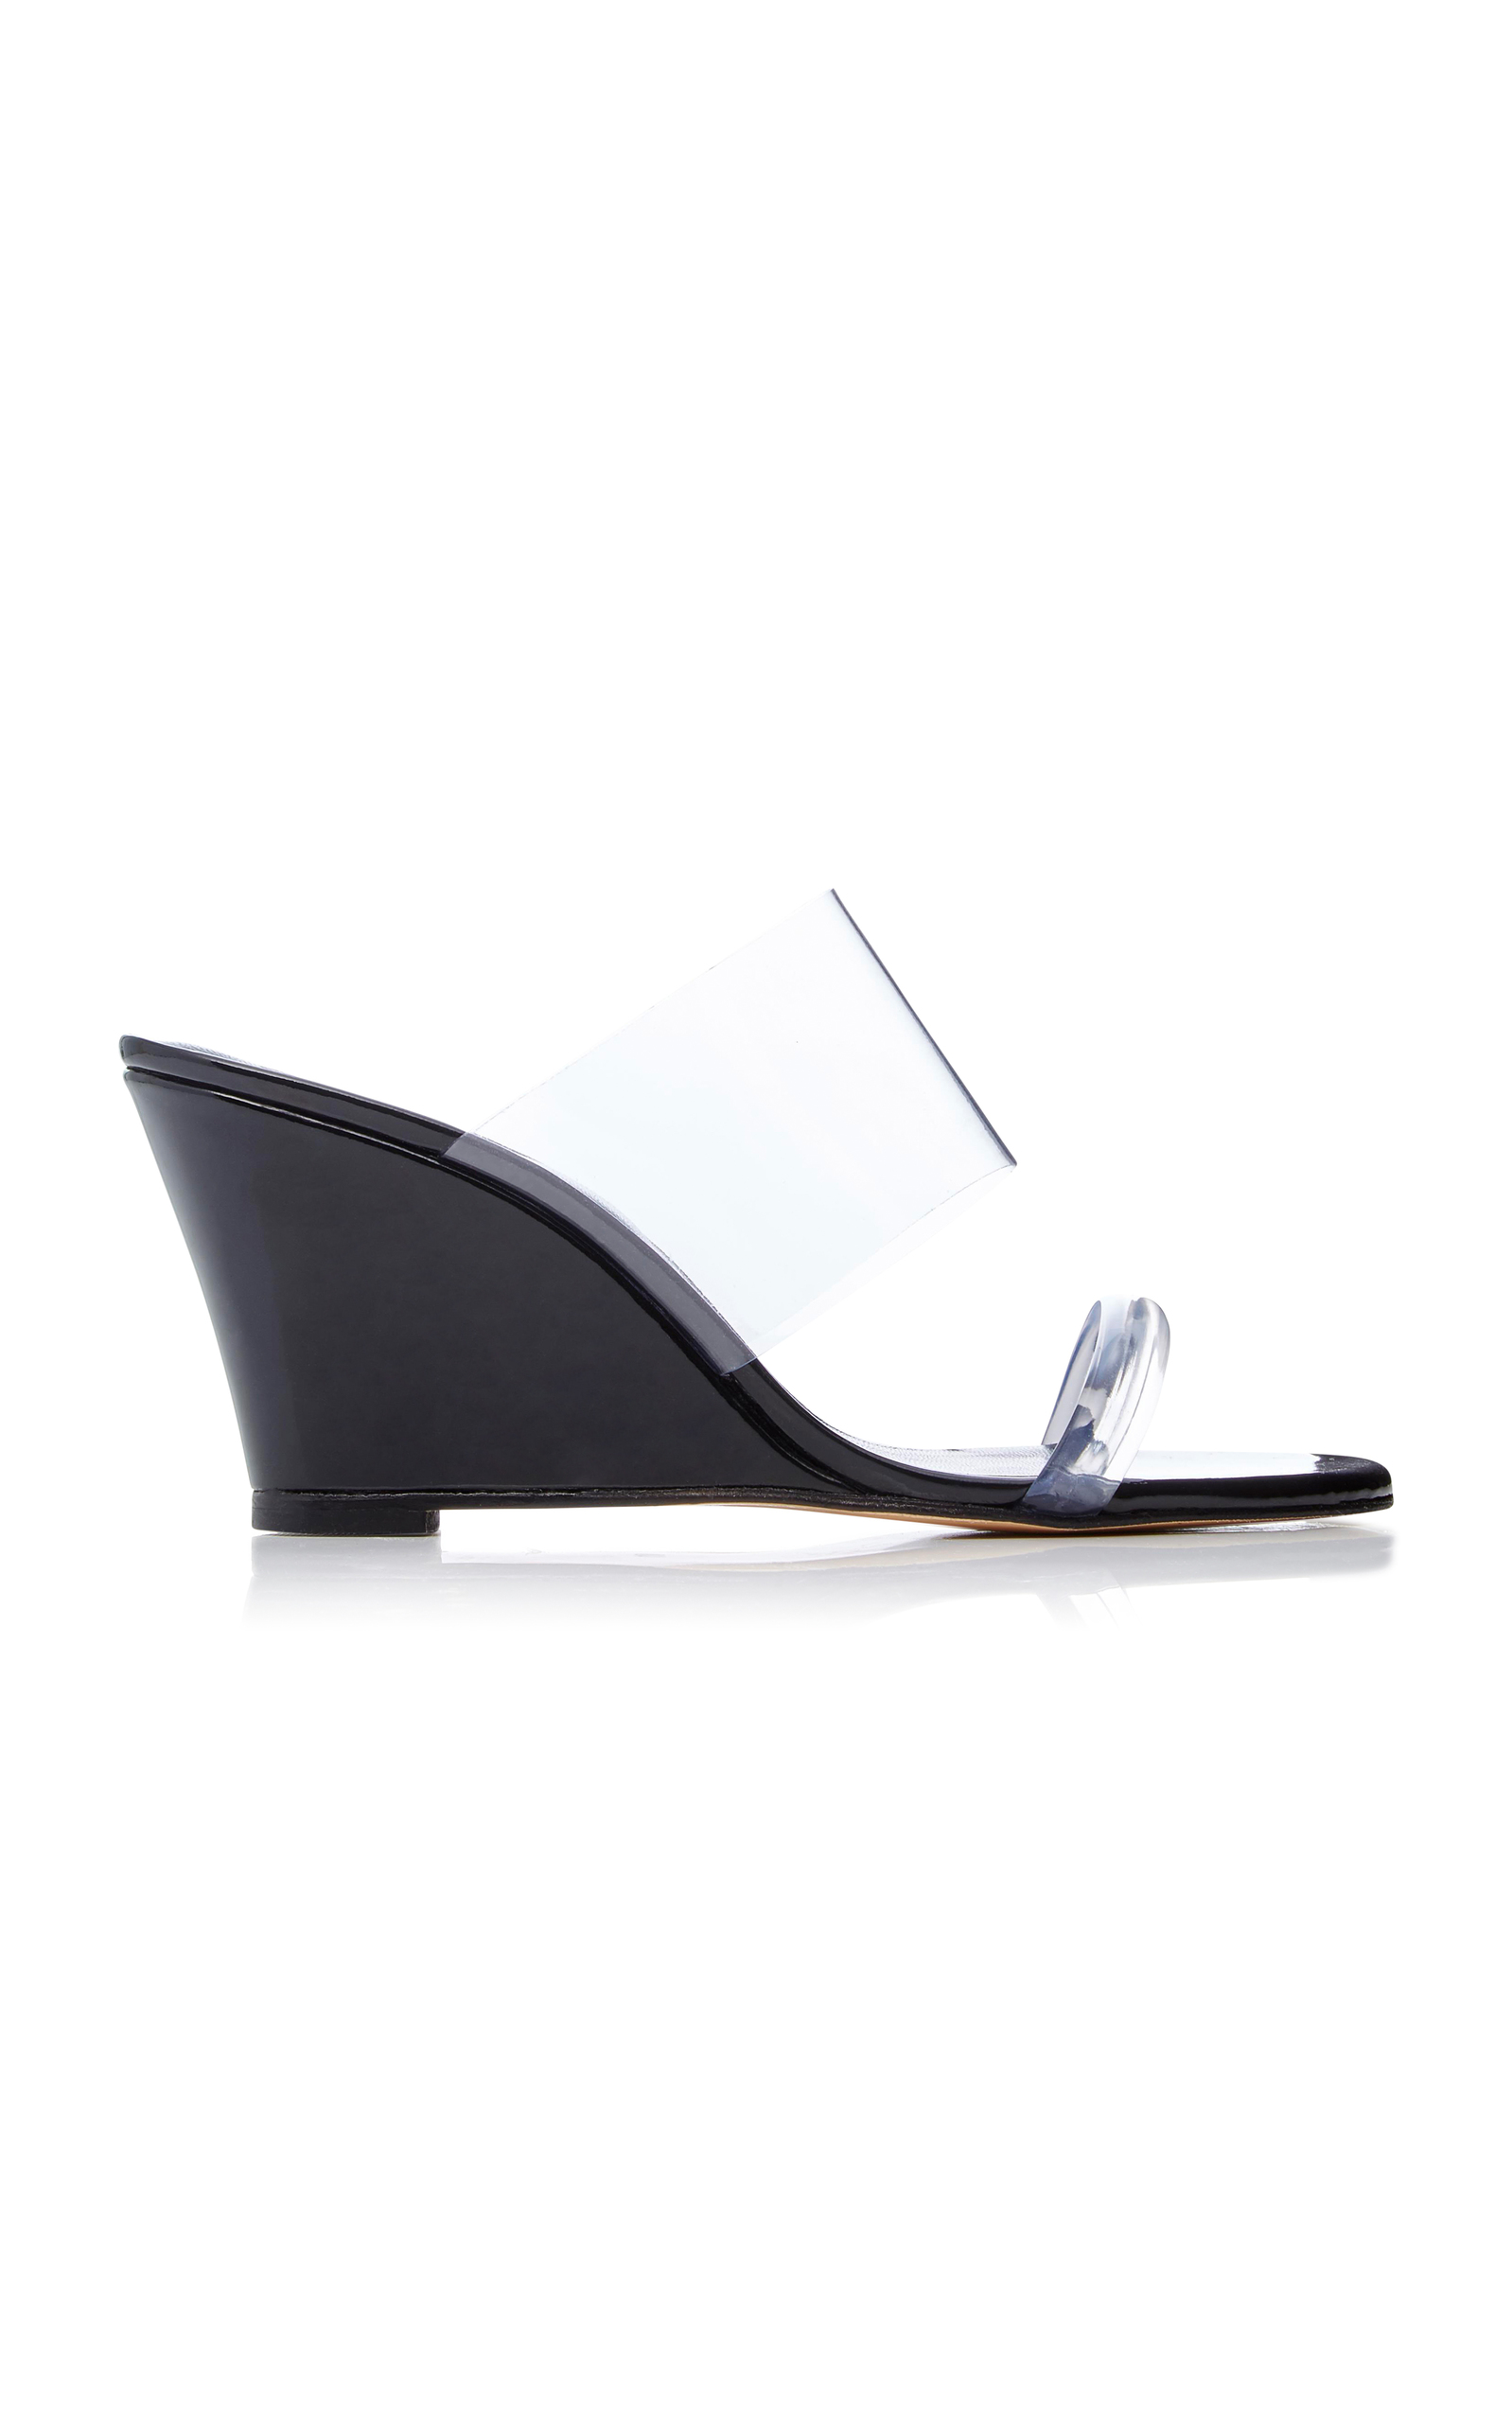 MARYAM NASSIR ZADEH Olympia Pvc-Trimmed Leather Wedge Heels in Black